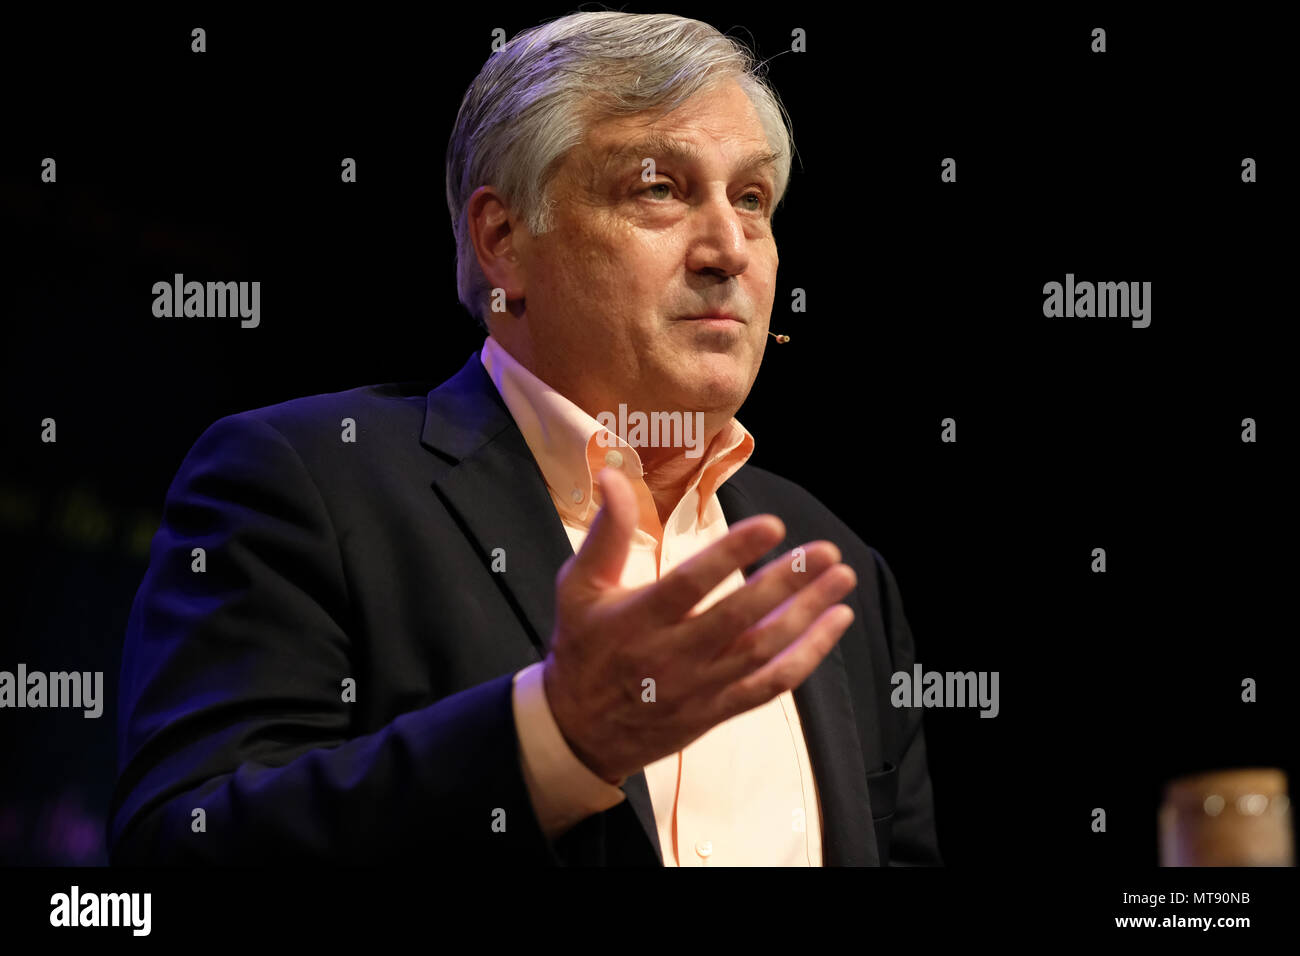 Hay Festival, Hay on Wye, UK - Monday 28th May 2018 - Dr Jonathan D Quick  on the stage at the Hay Festival talking about combating epidemics across the globe - Photo Steven May / Alamy Live News - Stock Image